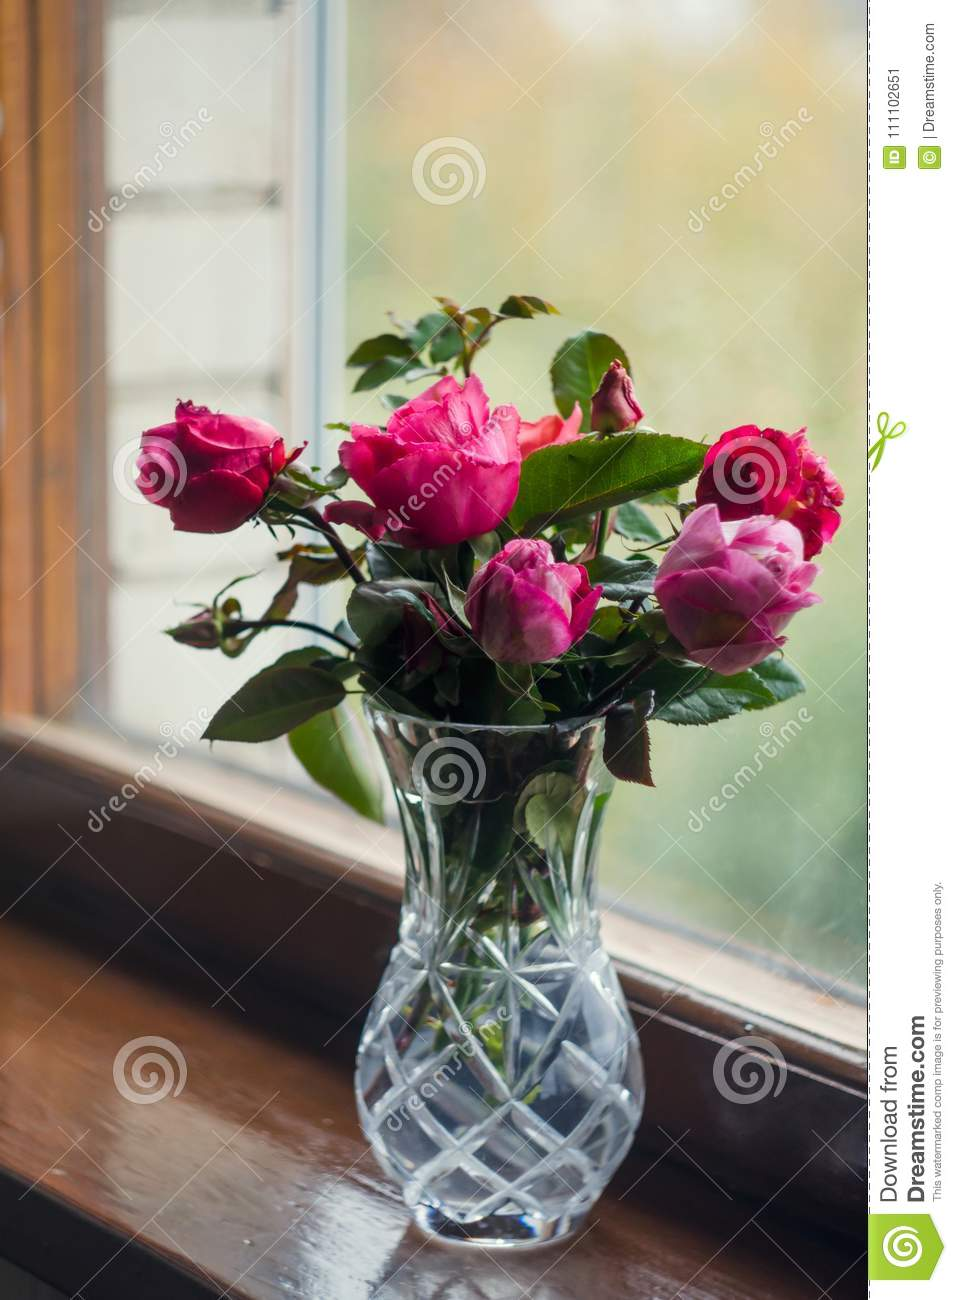 Homemade Roses Bouquet In A Crystal Vase On A Wooden Window The